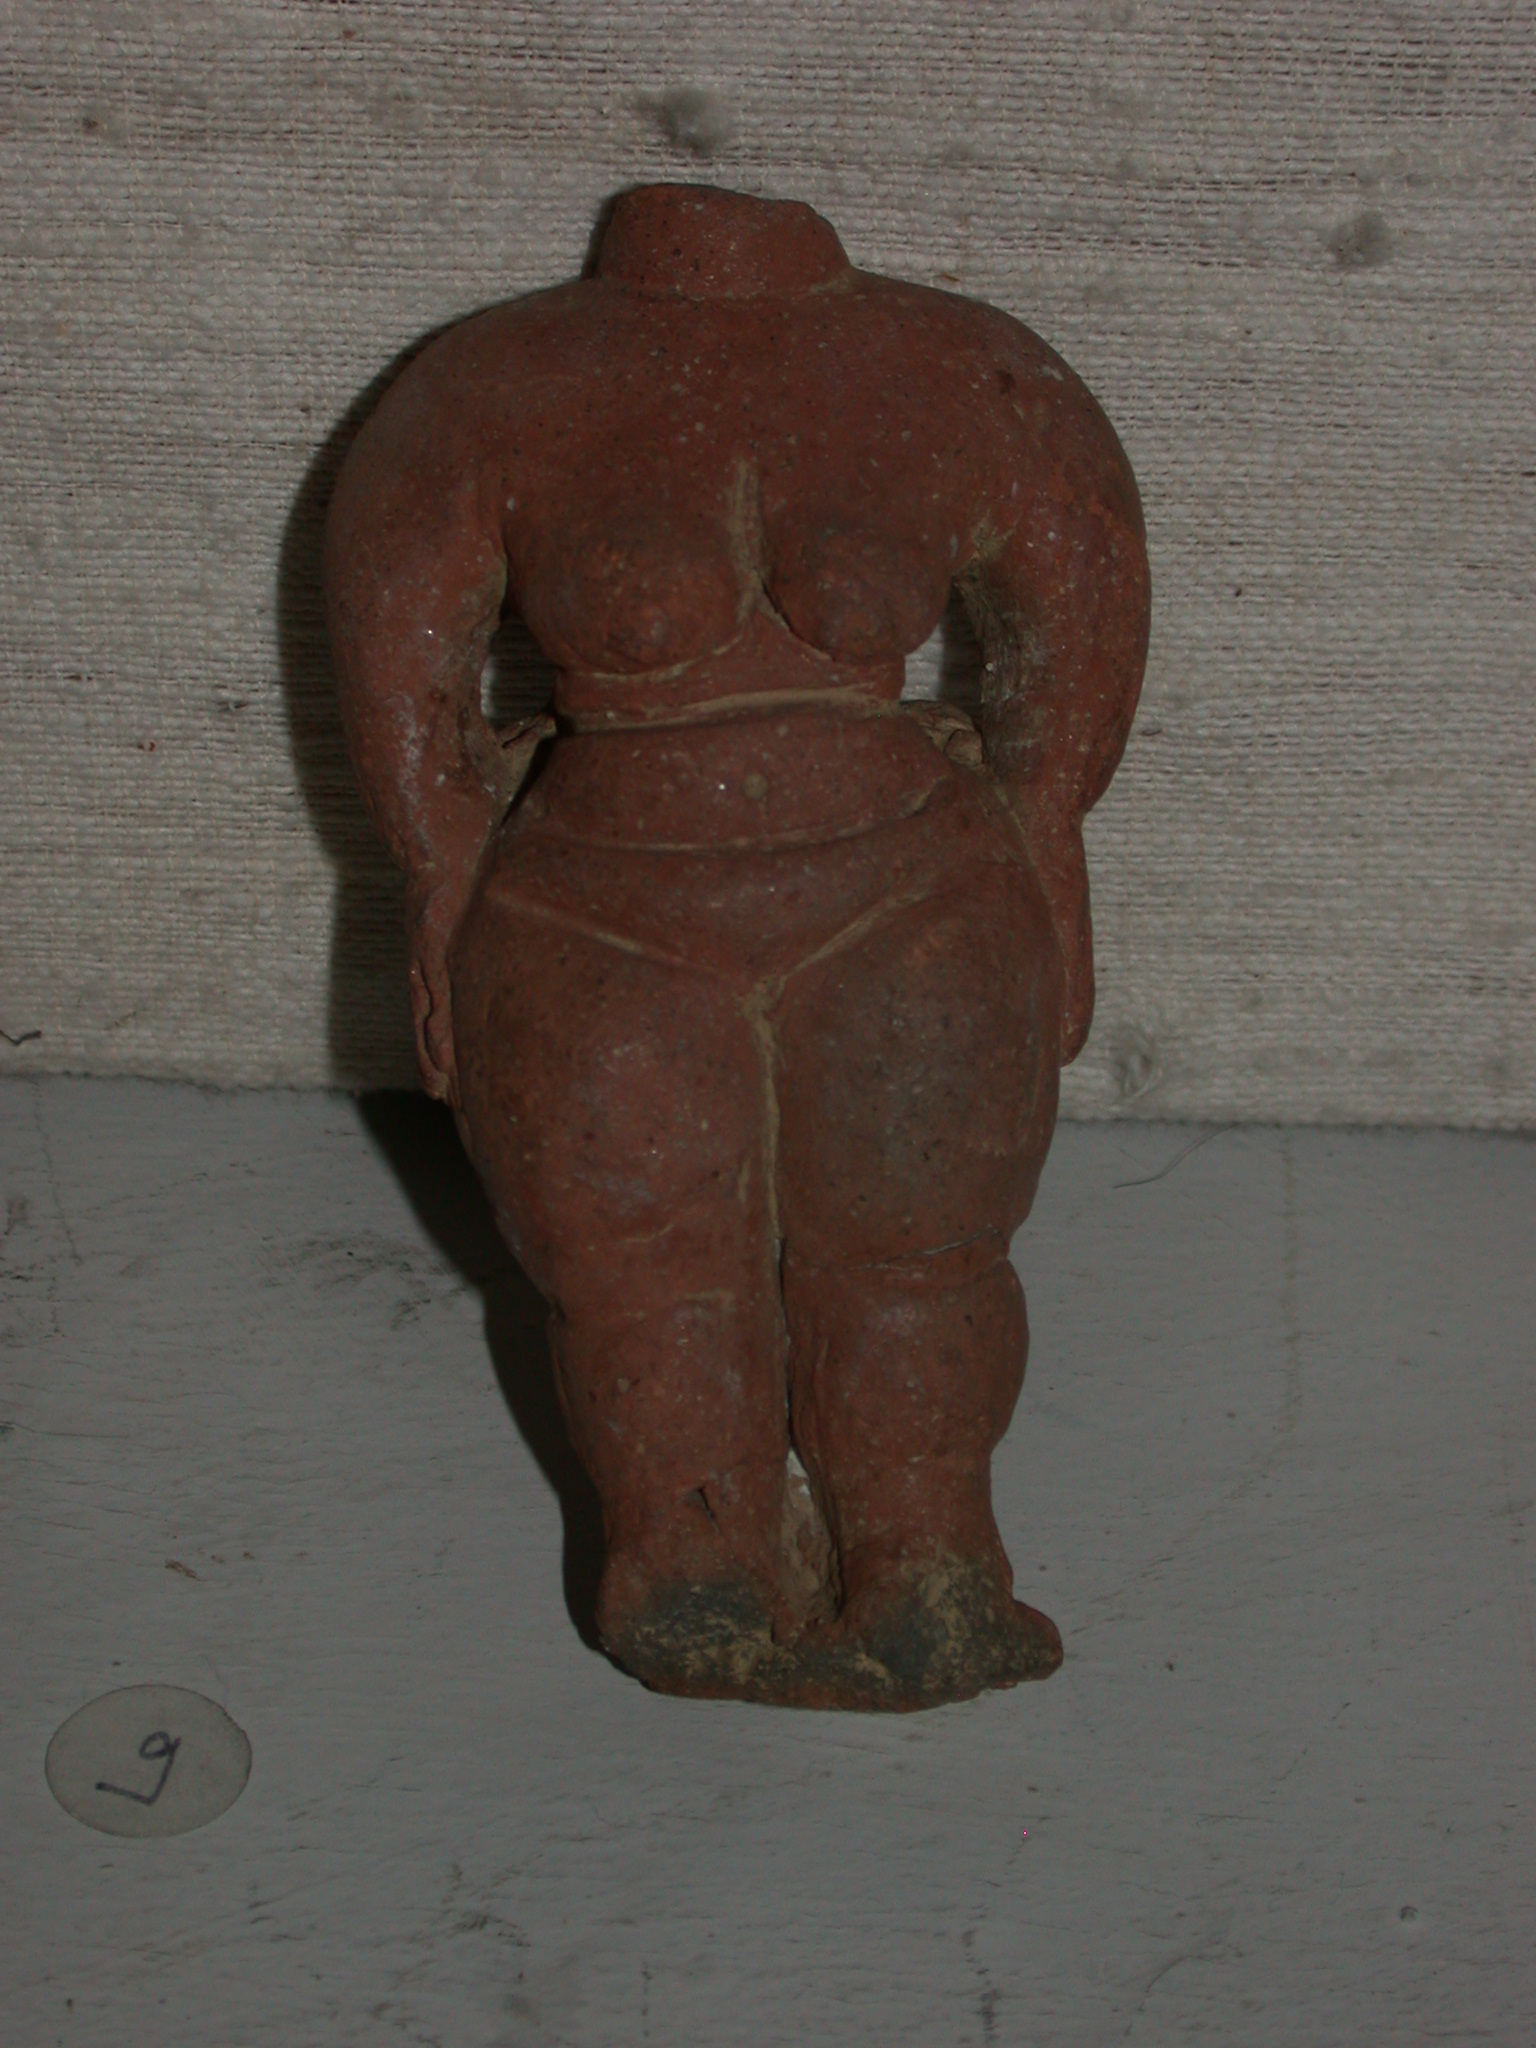 Terra Cotta Female Figurine From Matara, Ethiopia, Now Located in National Museum, Addis Ababa, Ethiopia